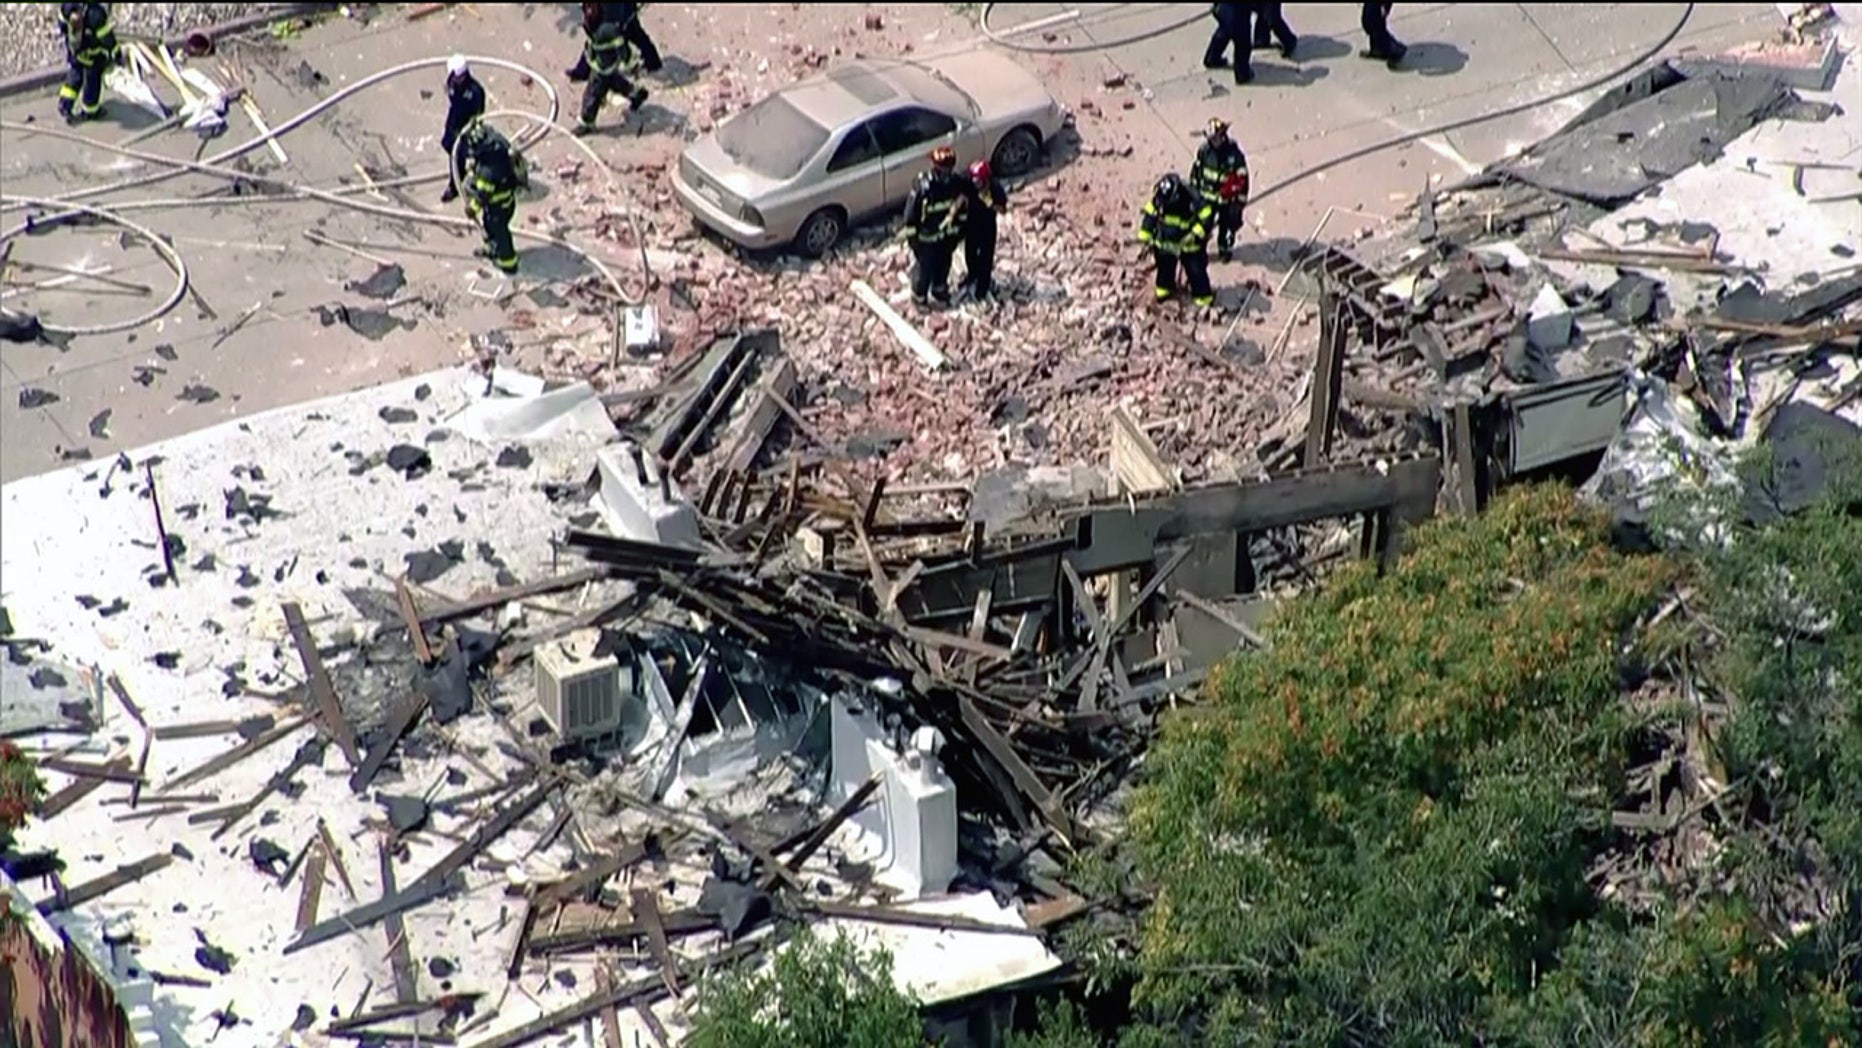 Firefighters respond to an apartment explosion in Denver, Colo. Tuesday.